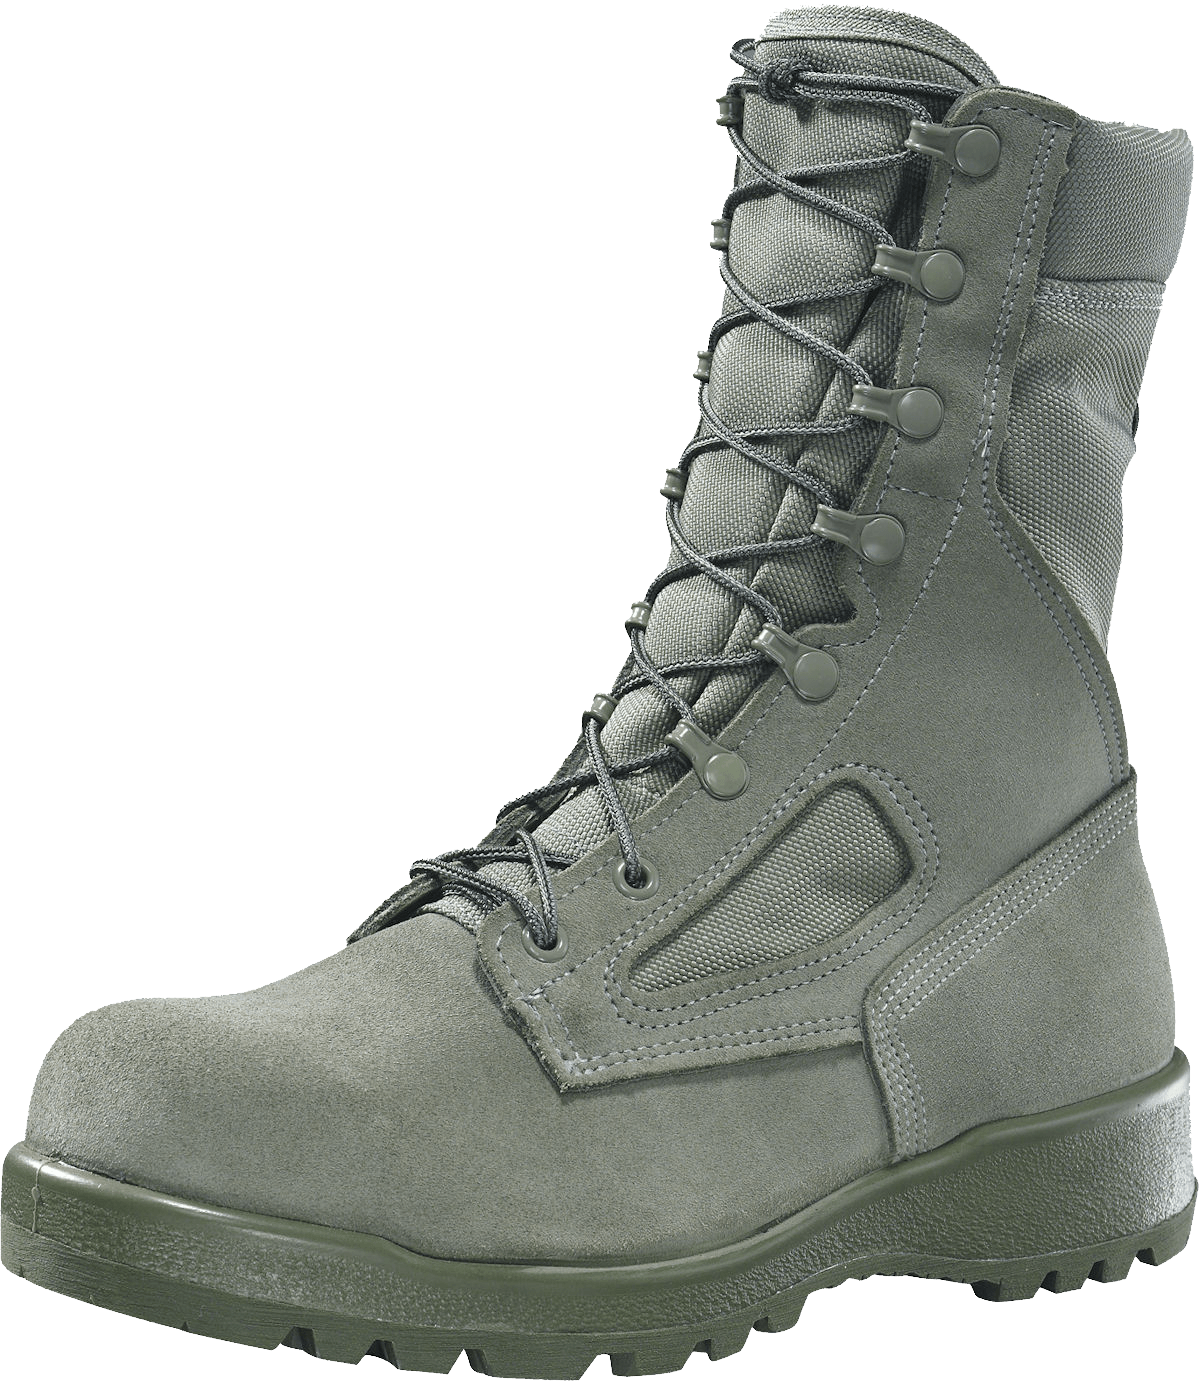 Olive green Boots PNG Image